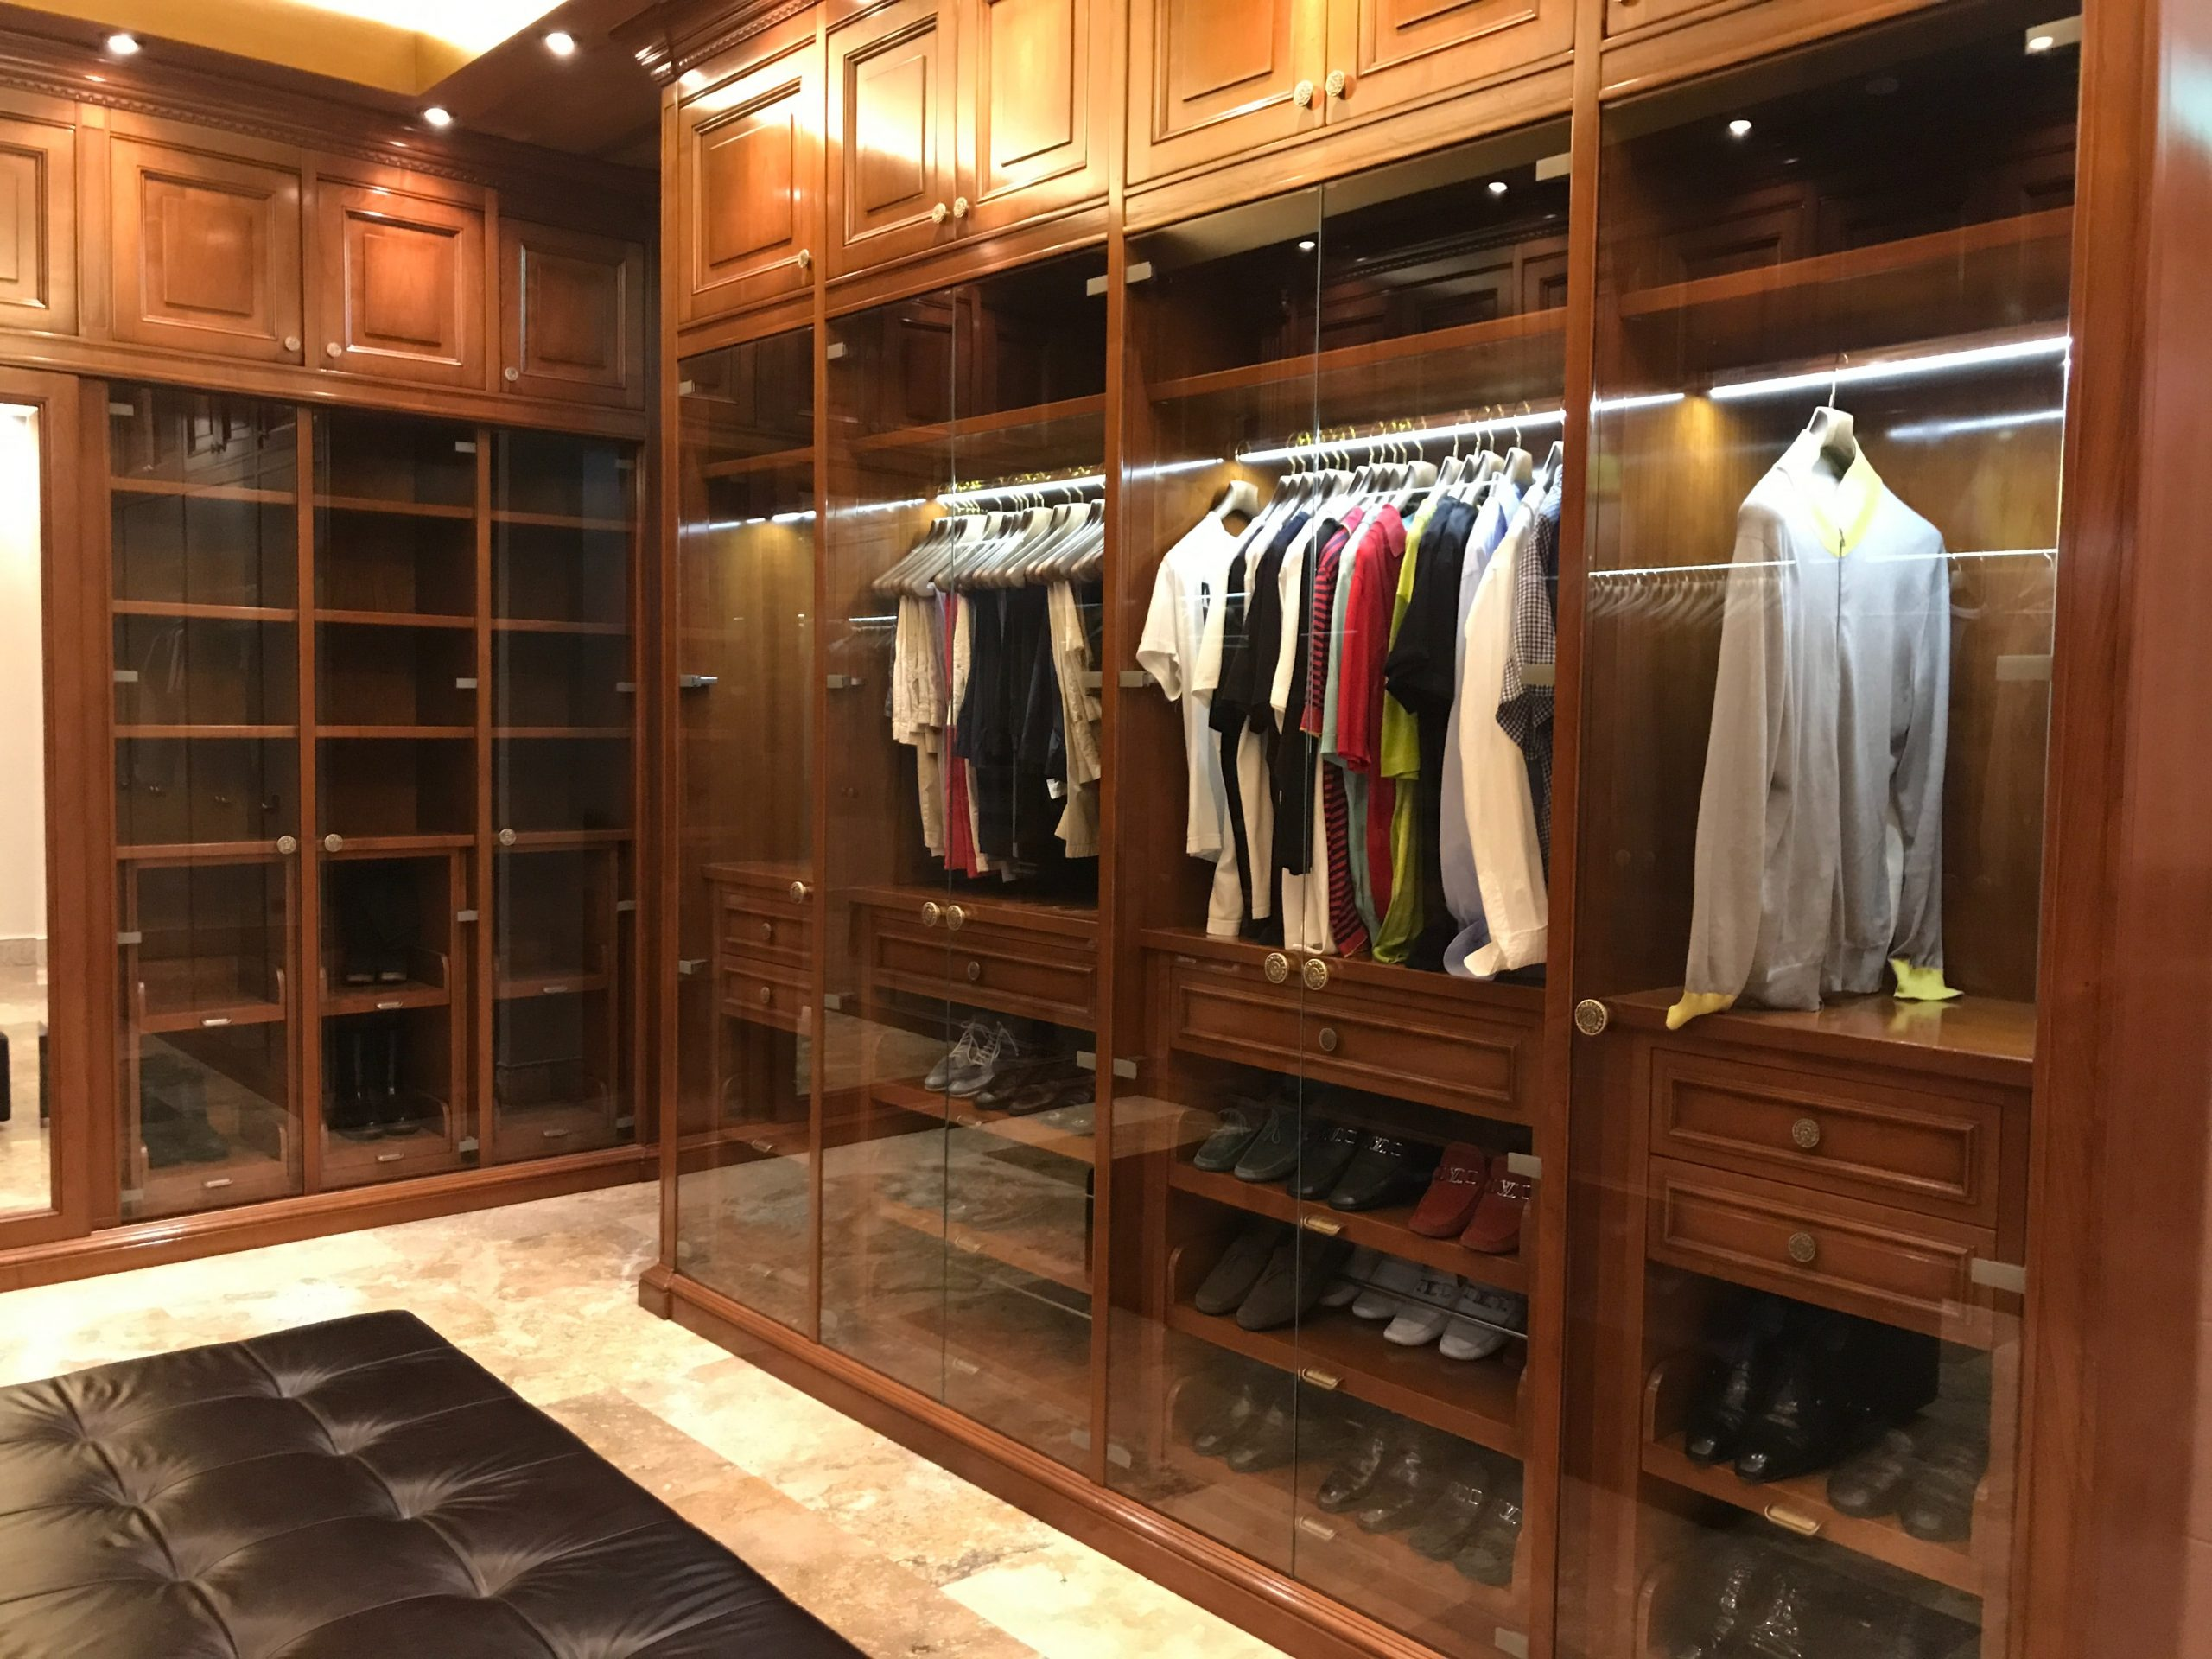 Choosing the Ideal Wardrobe for Your Home